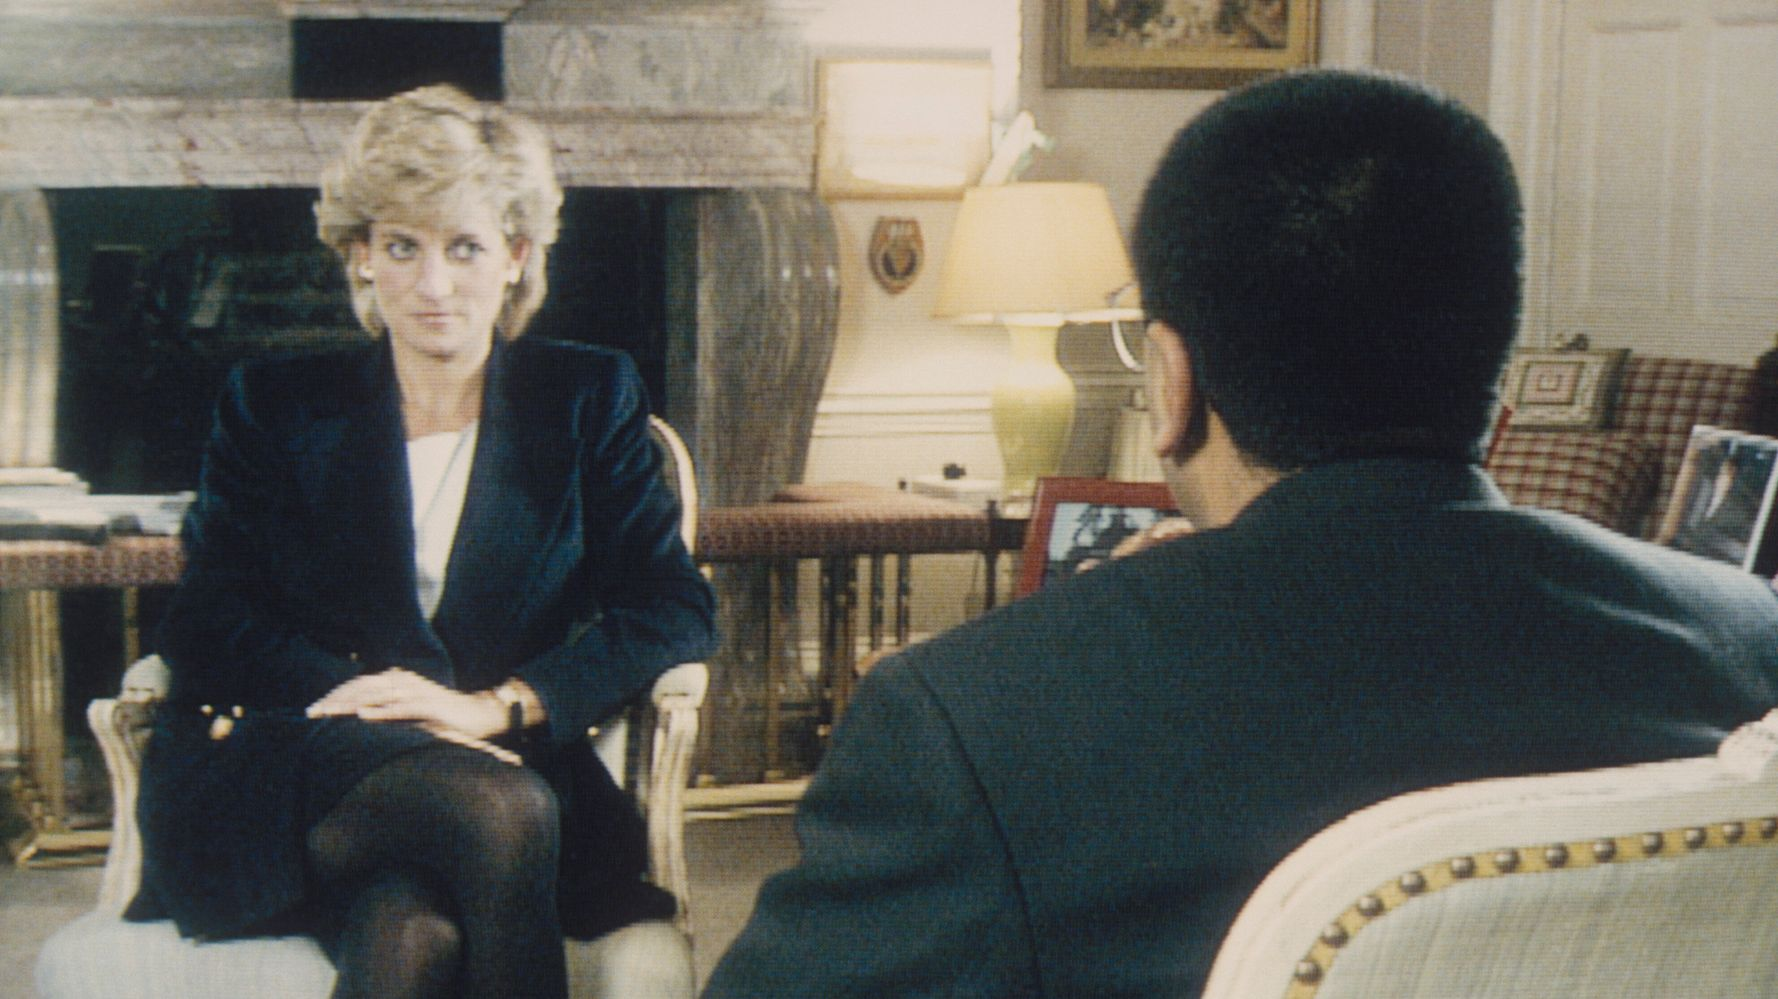 BBC Journalist Martin Bashir Steps Down As Report On Princess Diana Interview Looms